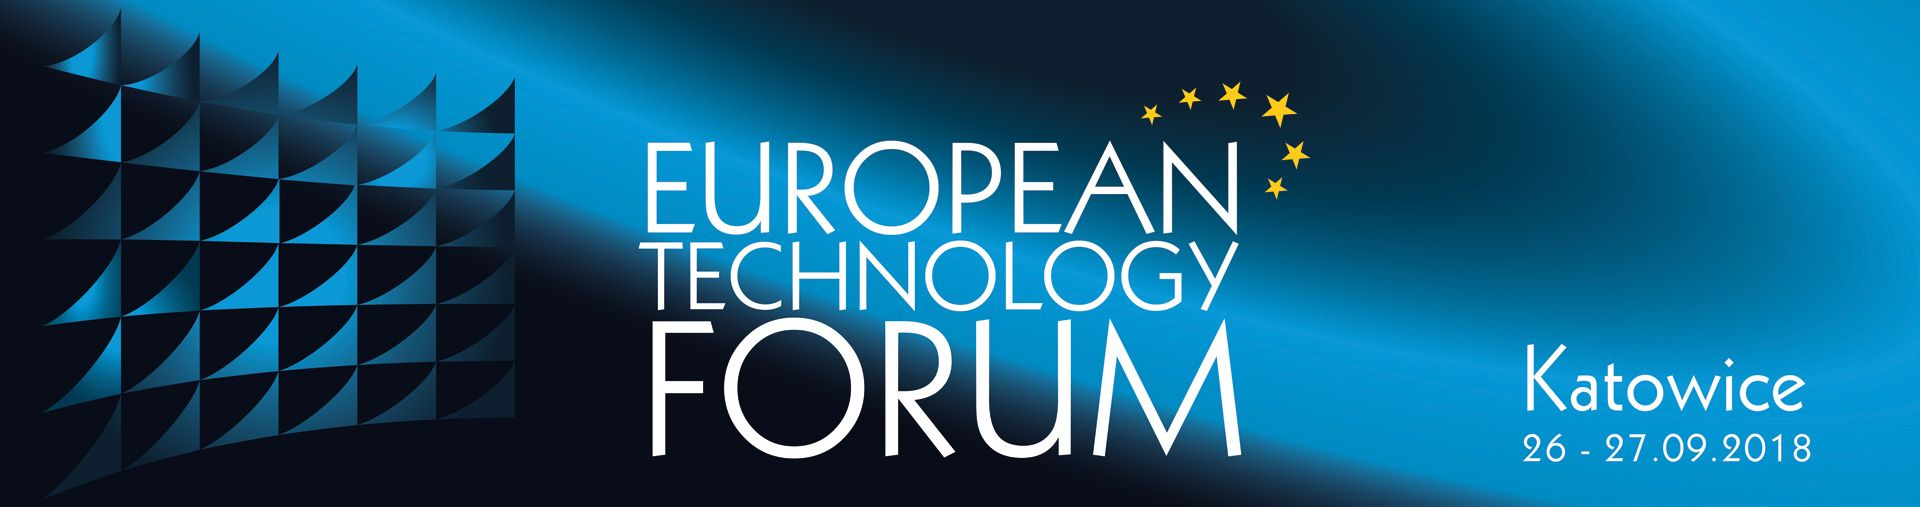 european forum technology